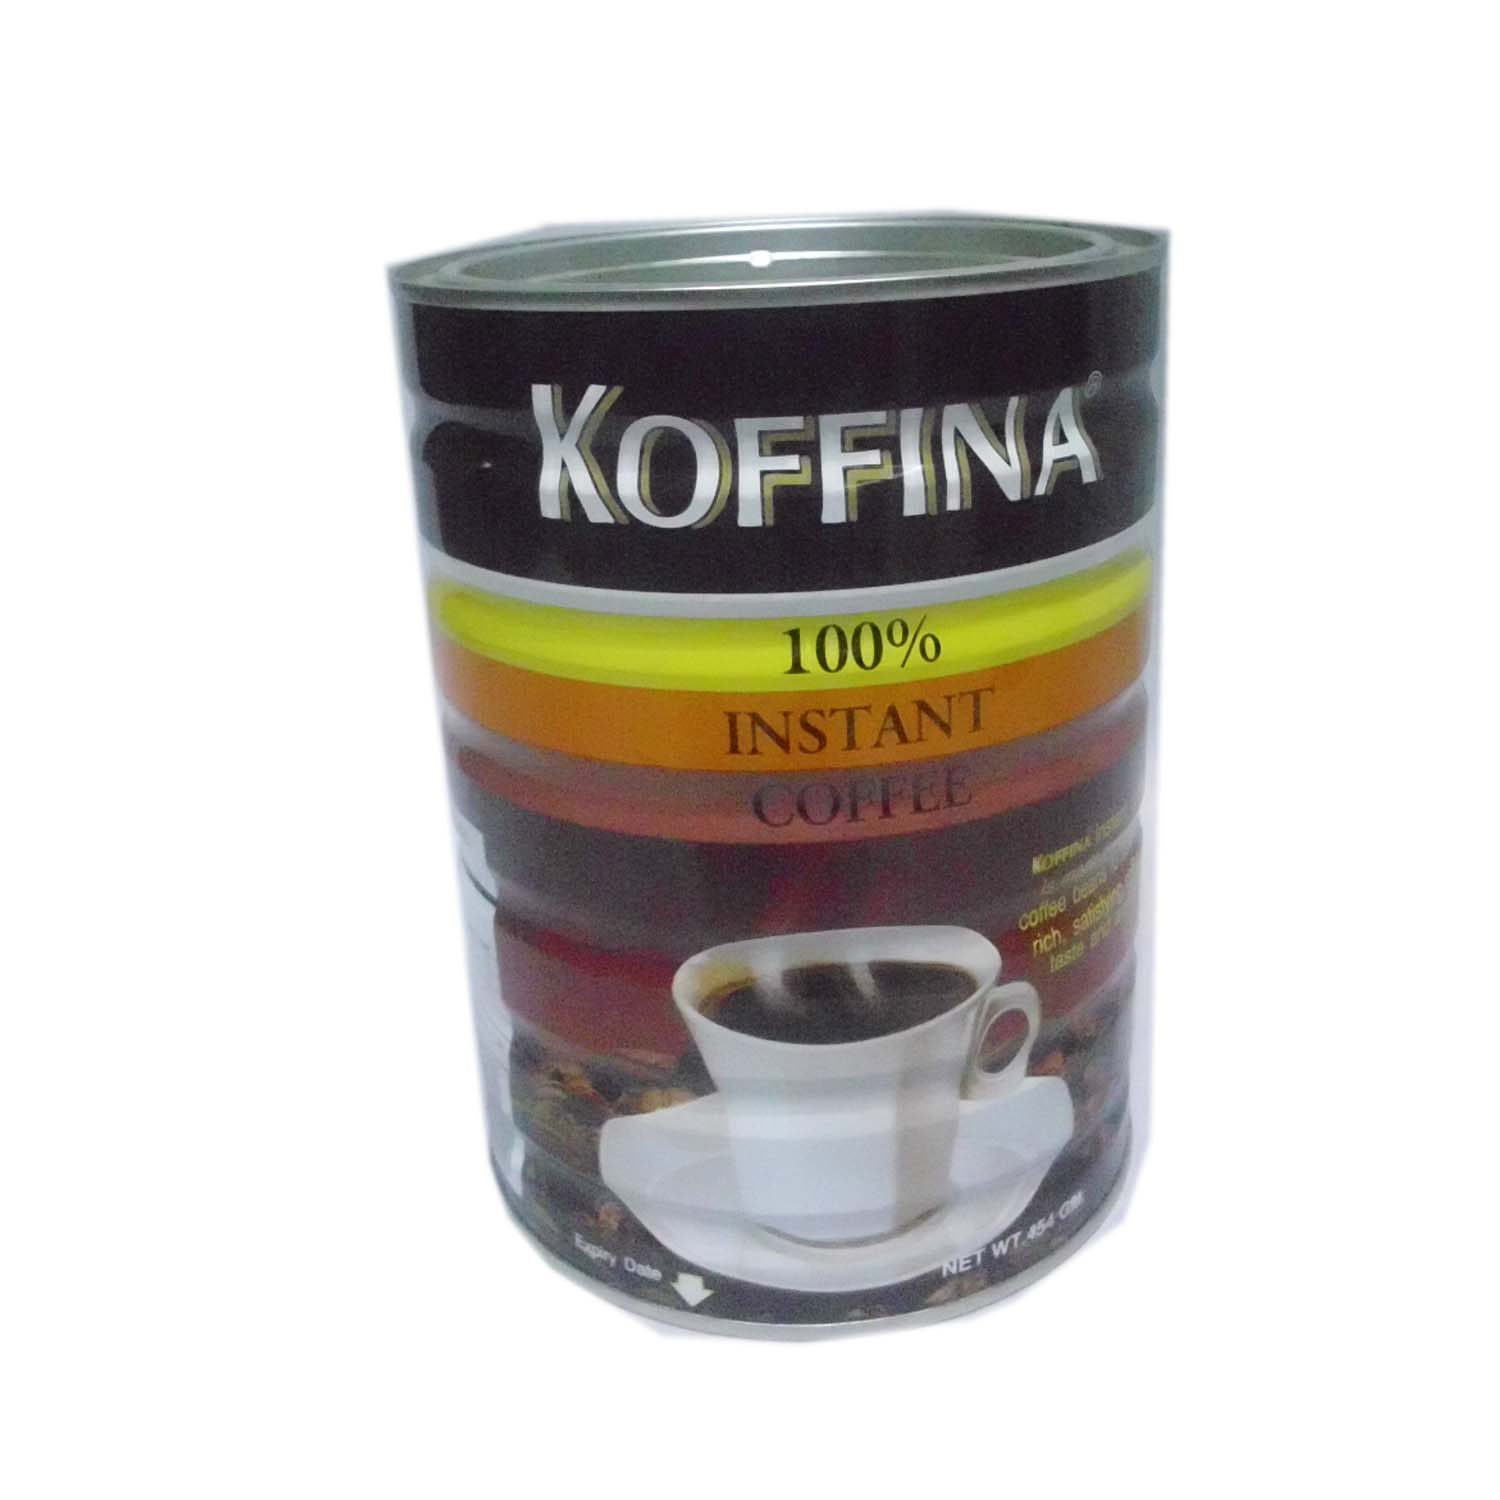 Koffina Coffee